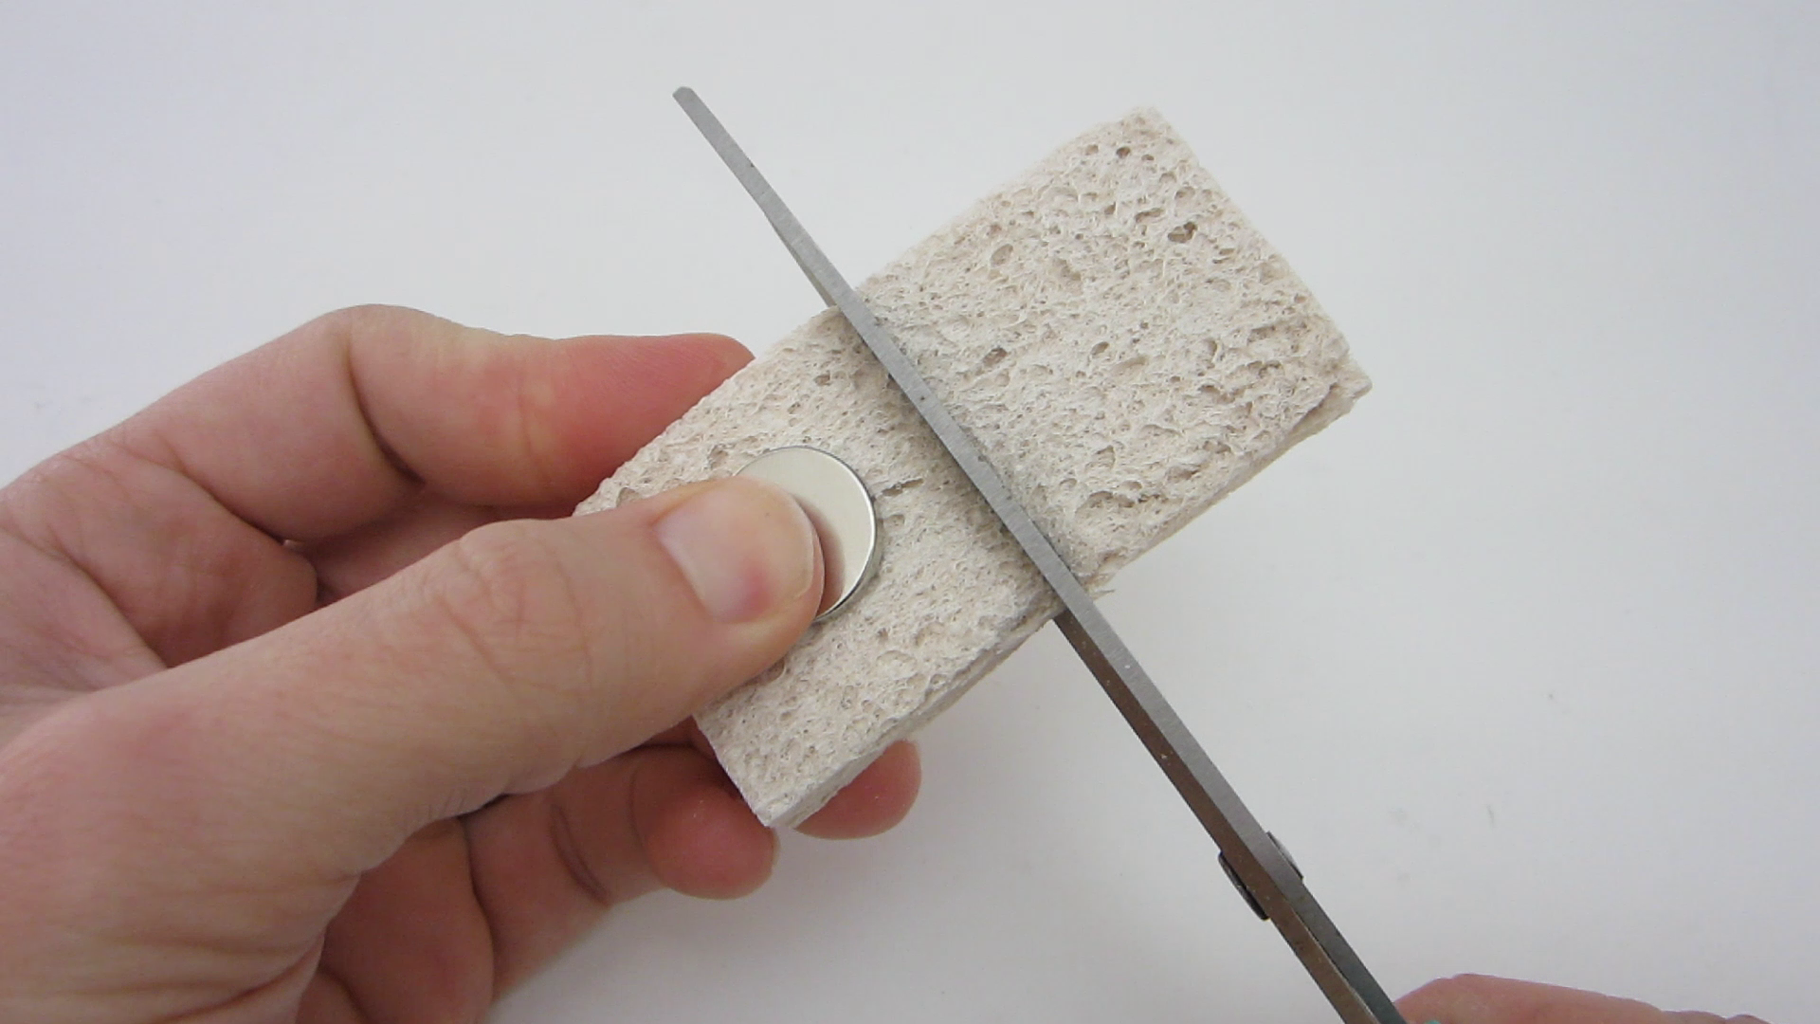 Cut the Scrubber to Be a Little Larger Than the Magnet